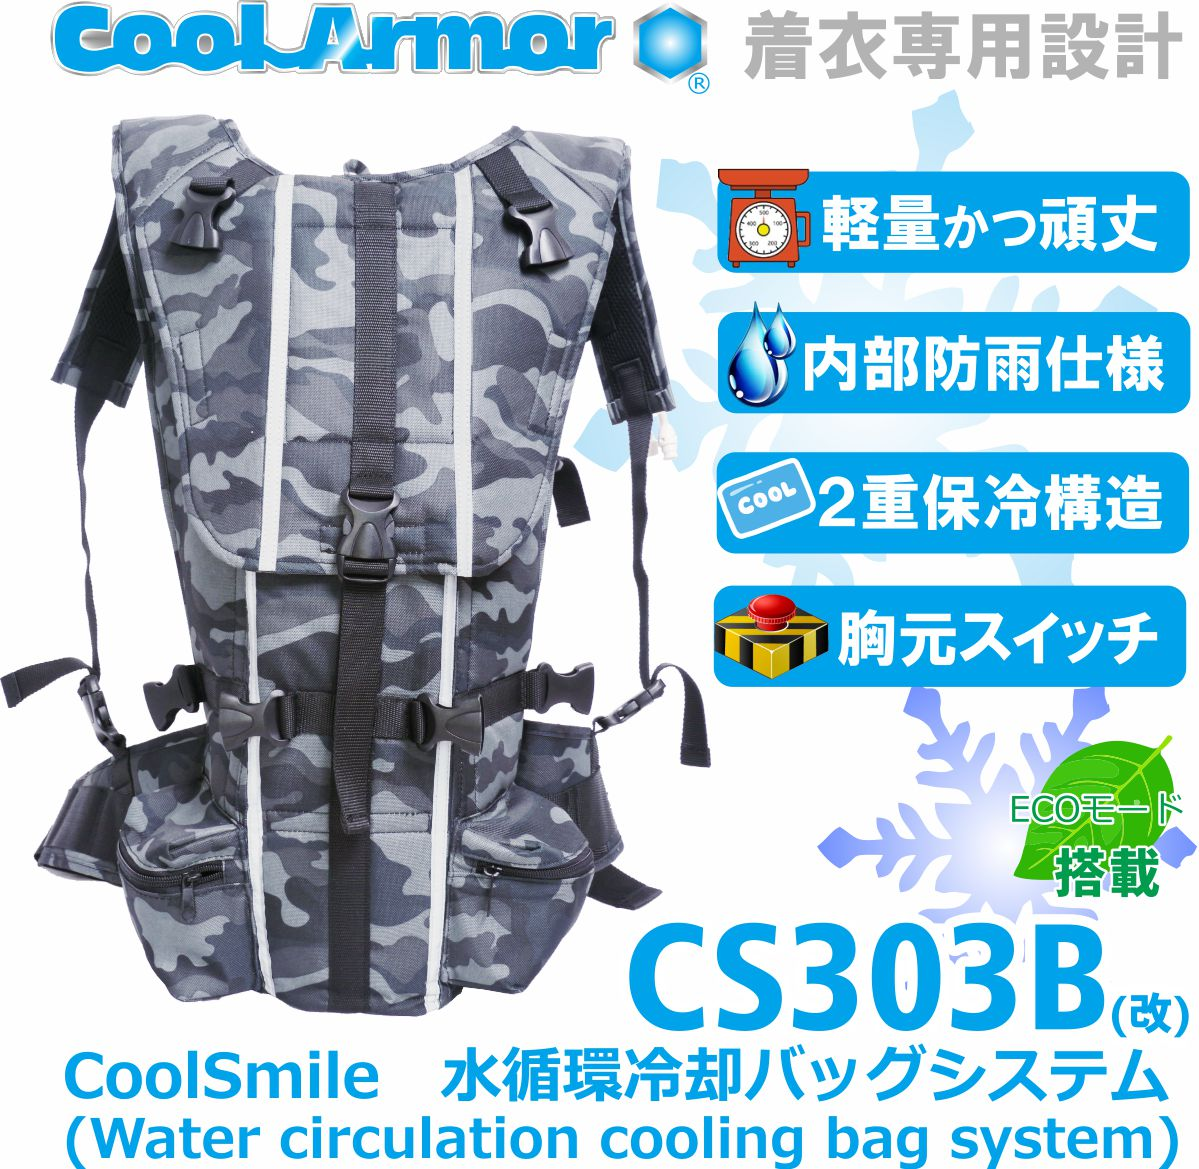 CoolSmile 水循環冷却バッグシステム(Water circulation cooling bag system)CS303B改